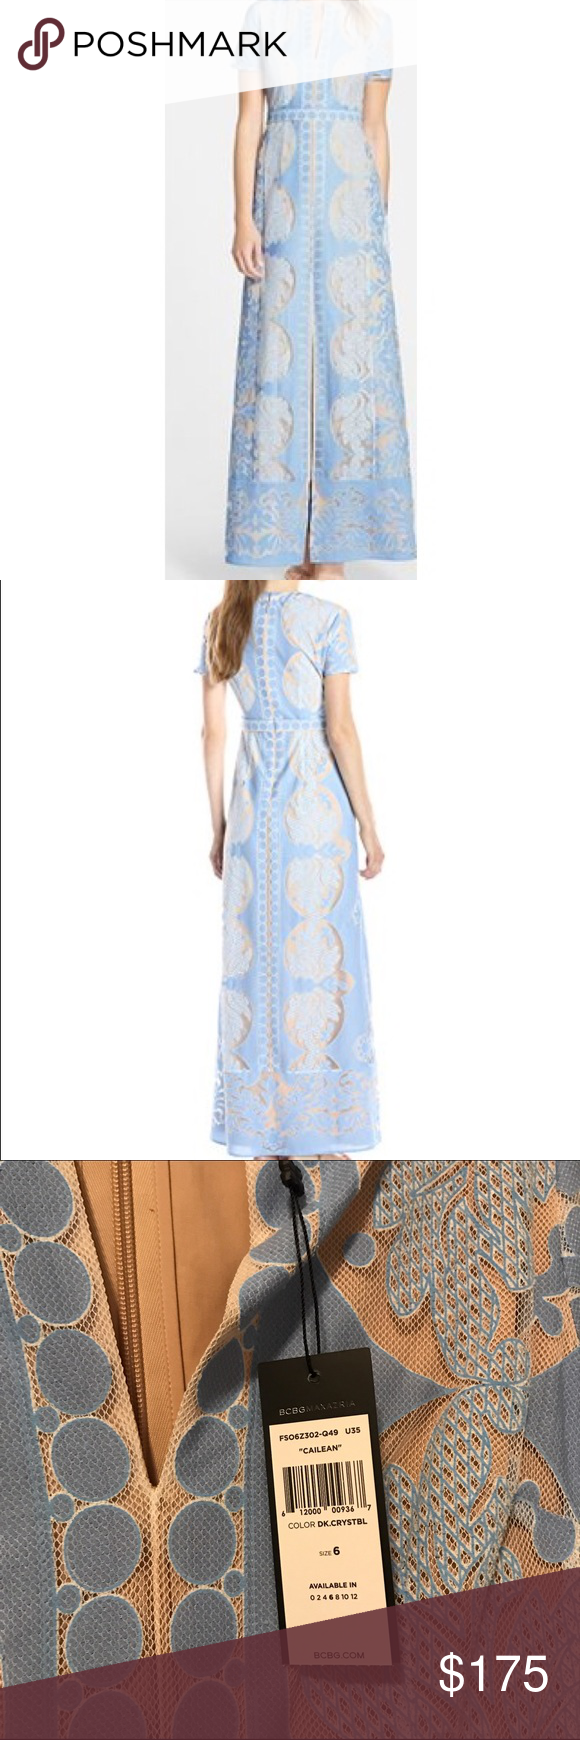 "BCBGMaxazria Cailean short sleeve lace dress NWT NWT - elegant lace Maxi dress fashioned with original medallion-style lace and seductive peek-a-boo lining details. Concealed back zipper. About 59"" from shoulder to hem. BCBGMaxAzria Dresses Maxi"